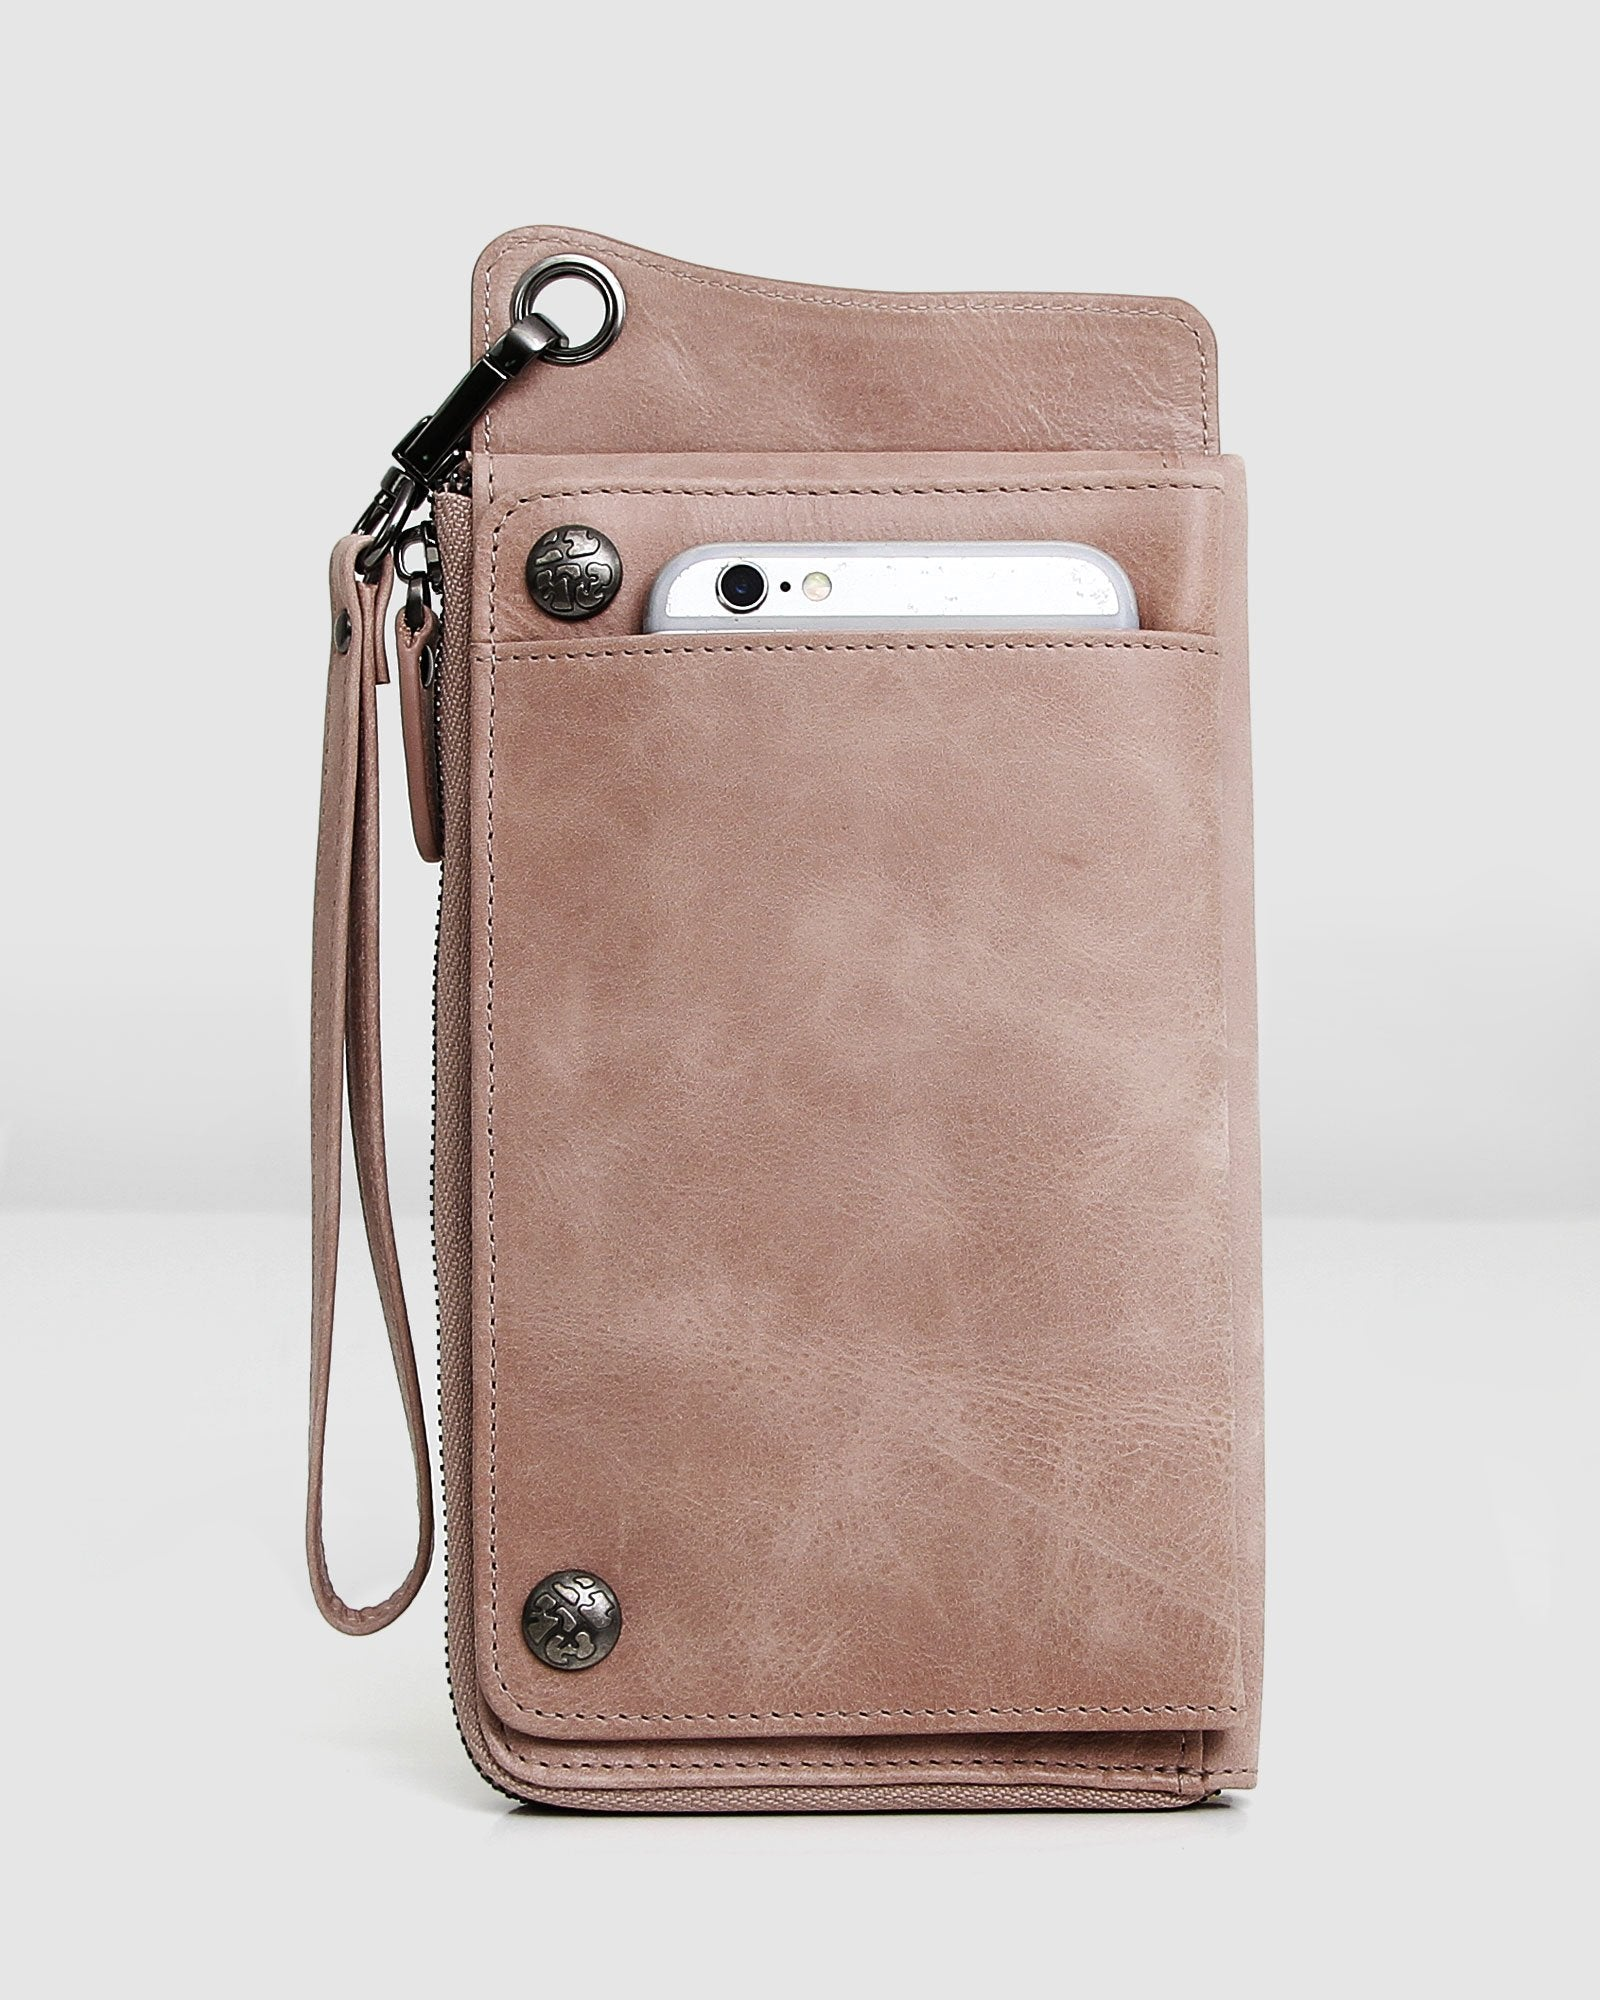 Penelope Leather Wallet - Dusty Rose